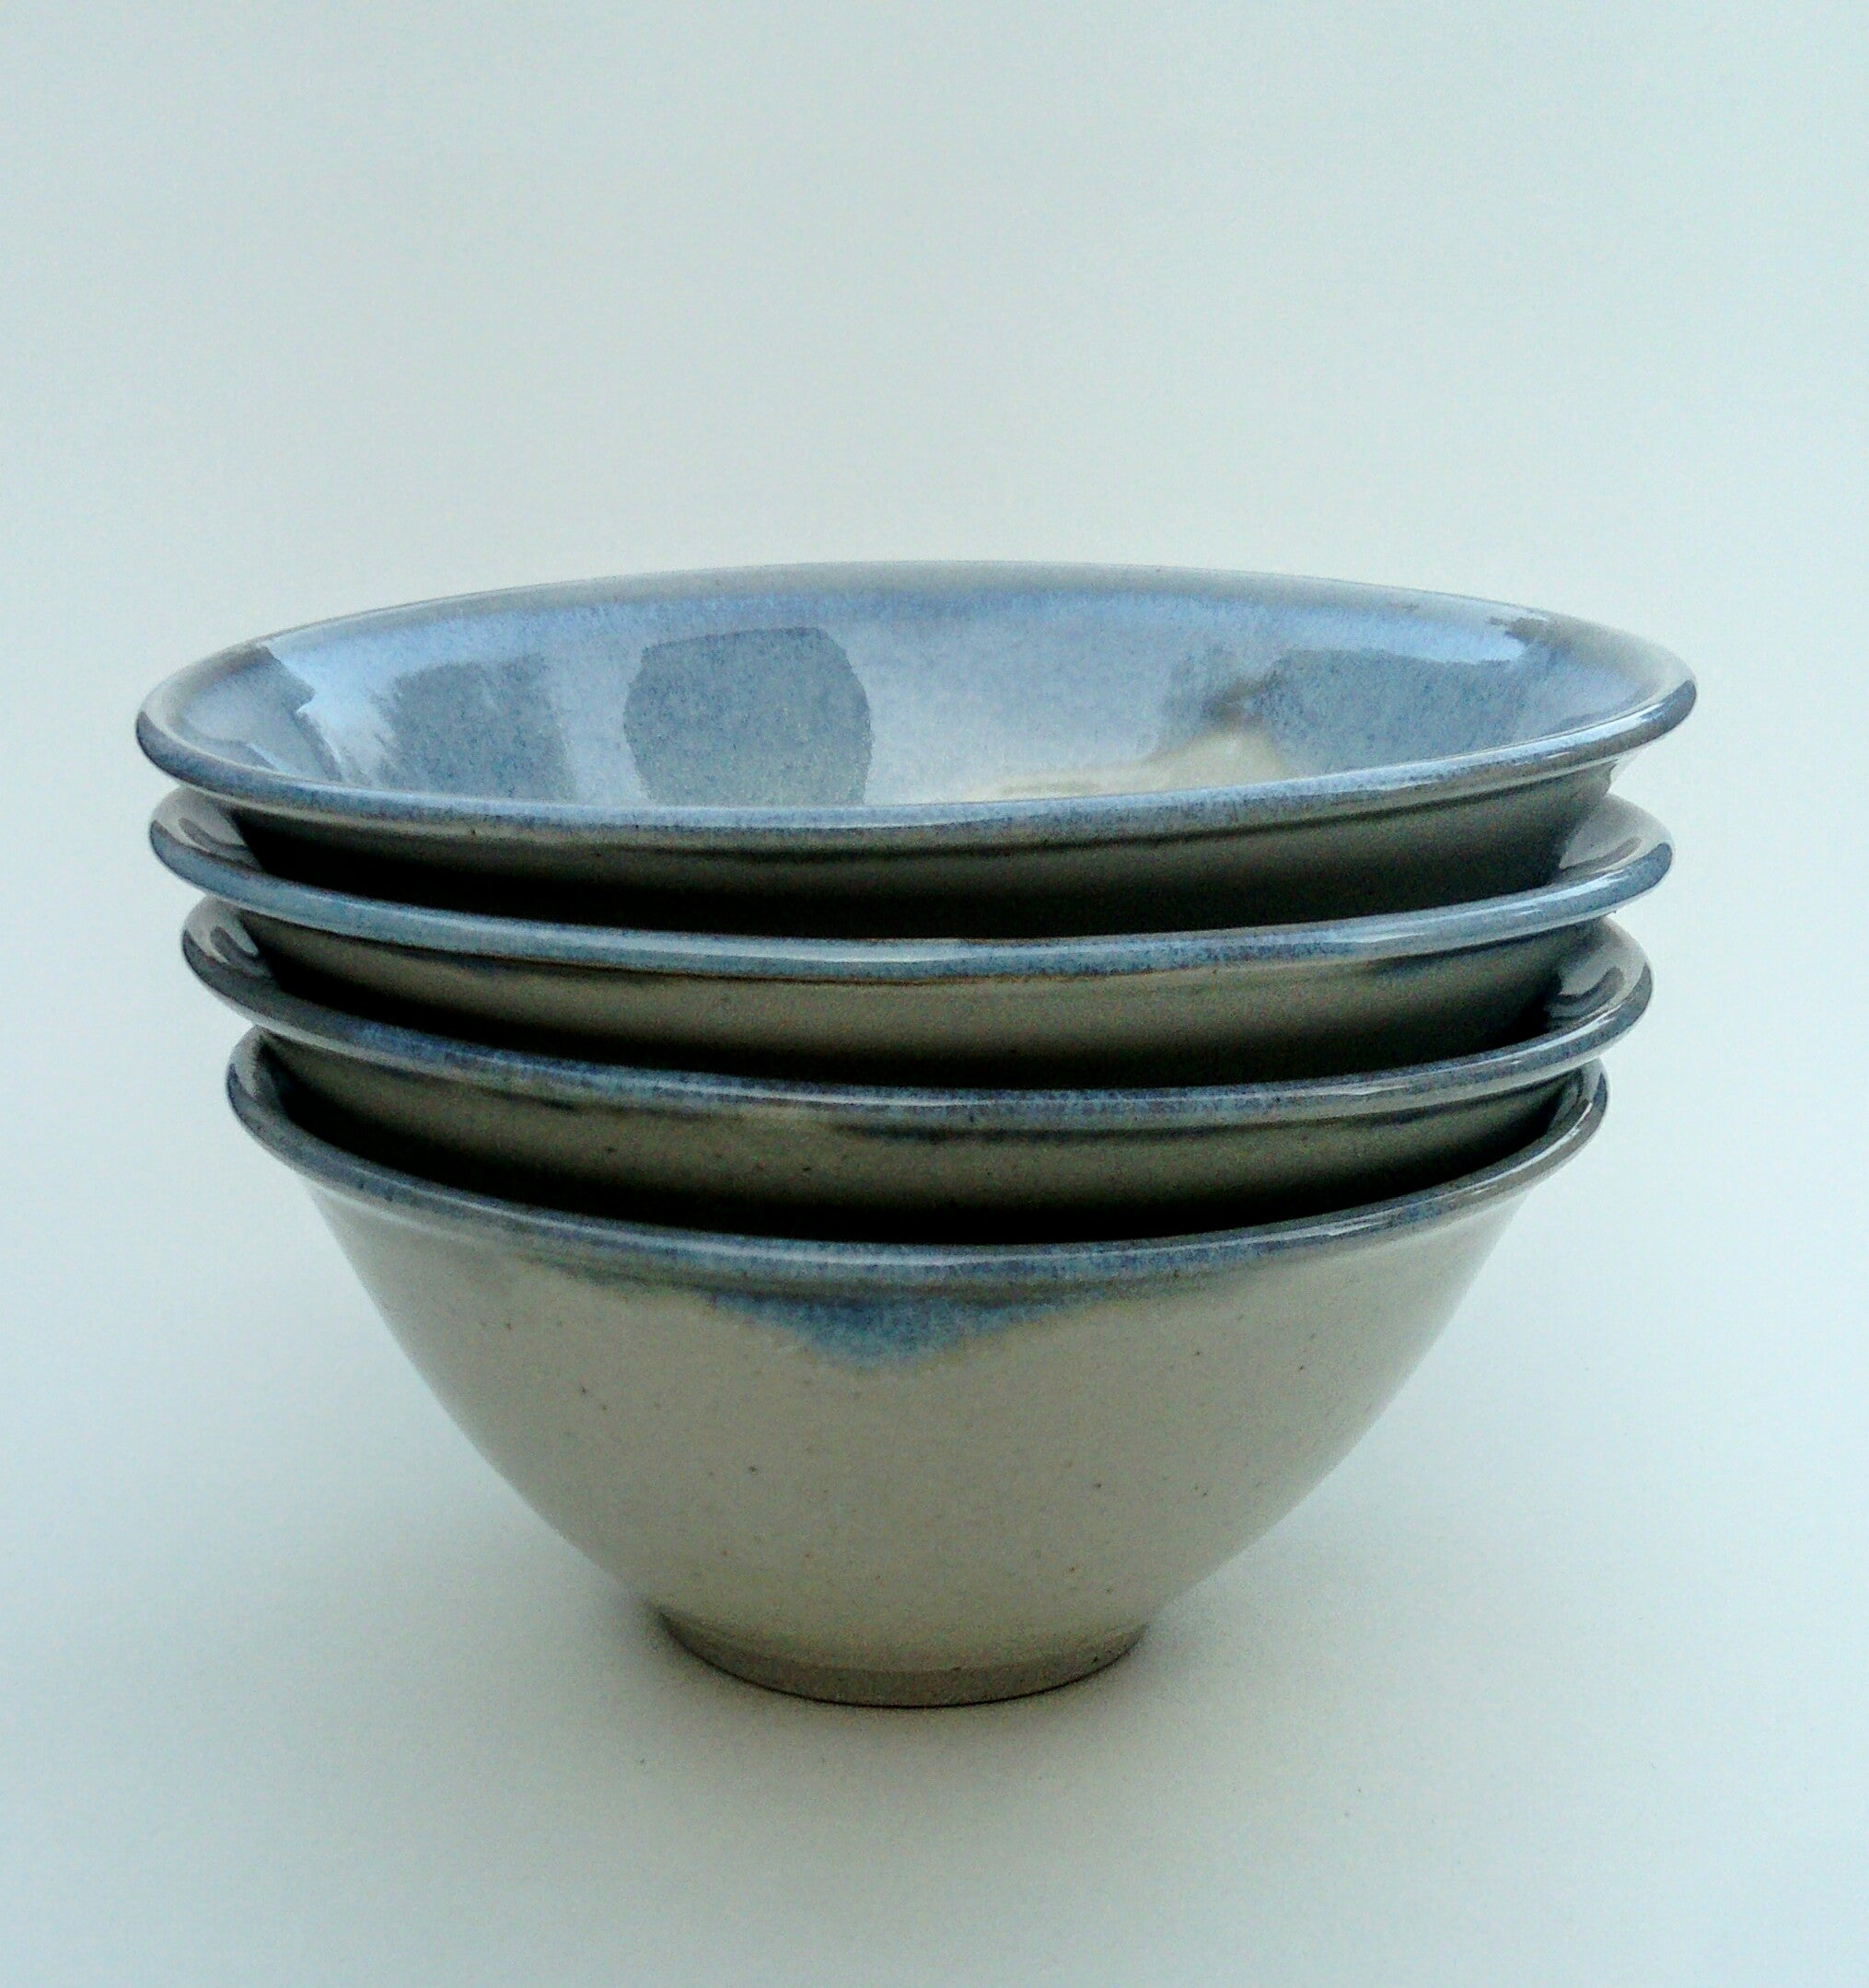 Soup/breakfast bowls (general purpose). Blue and white. (sold individually)